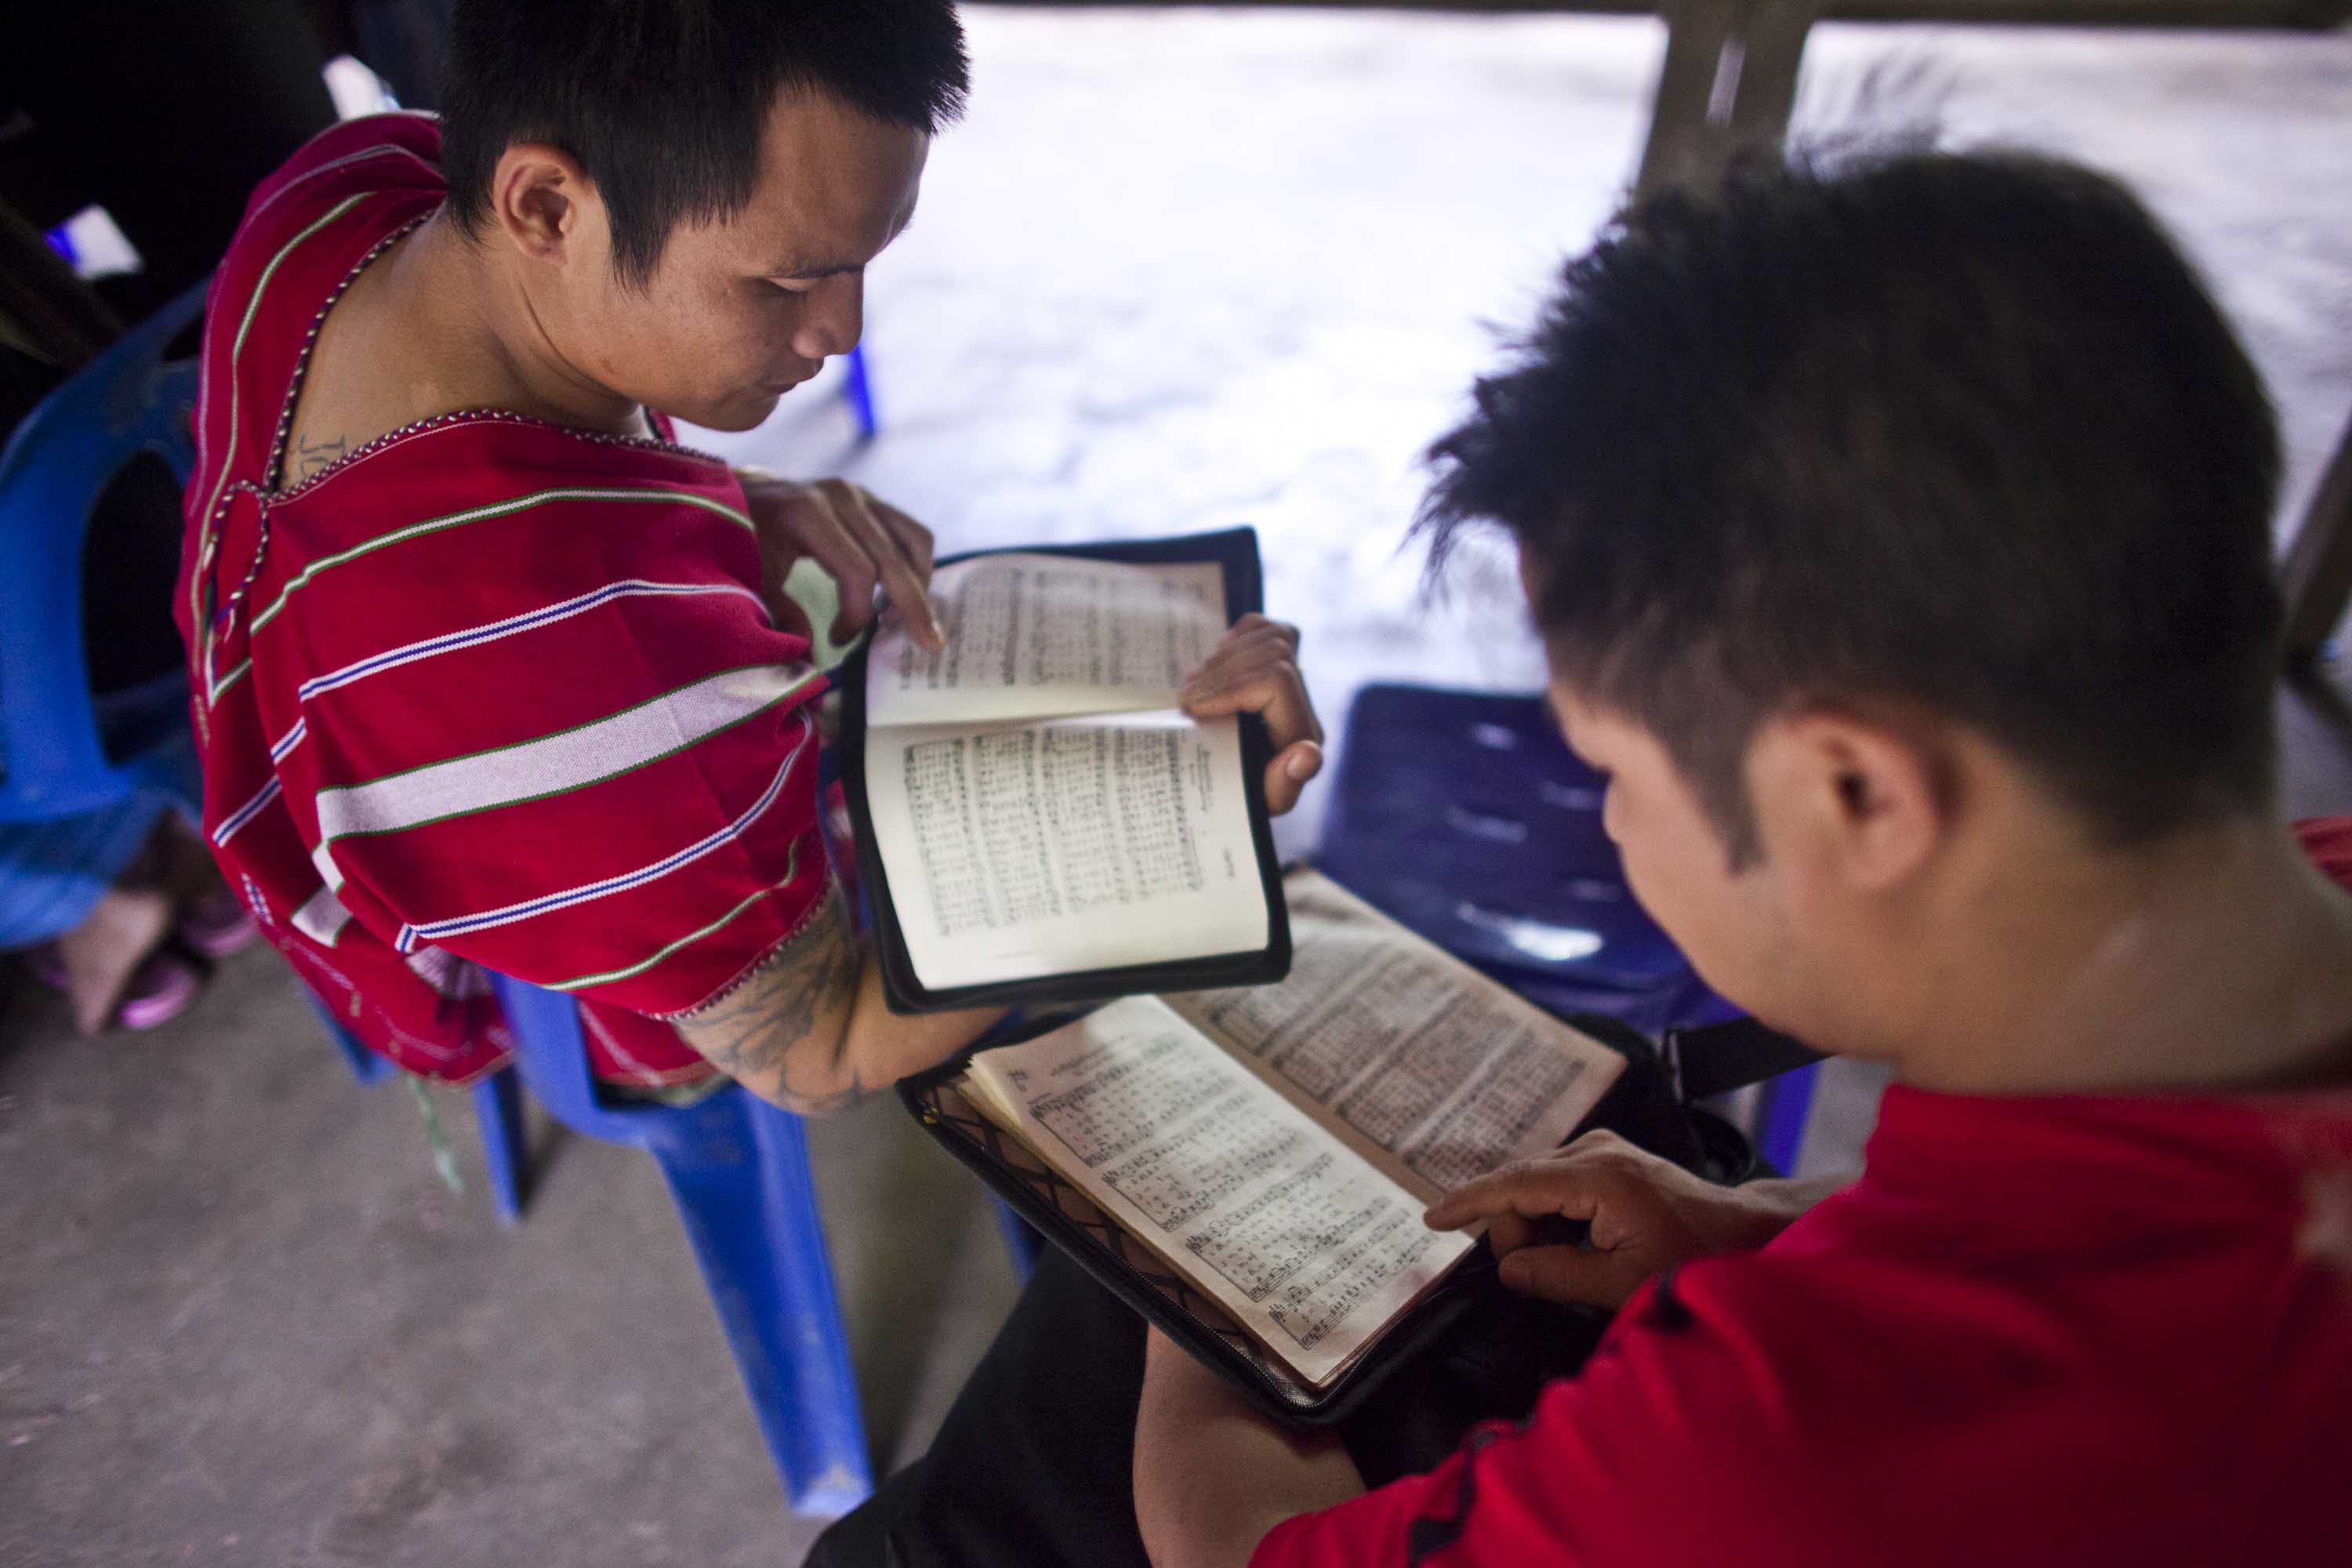 Ethnic Karen refugee students study for an test at Mae La refugee camp along the Thai-Myanmar border. As refugees search for third country sponsors, the brightest and best equipped are usually the first to leave